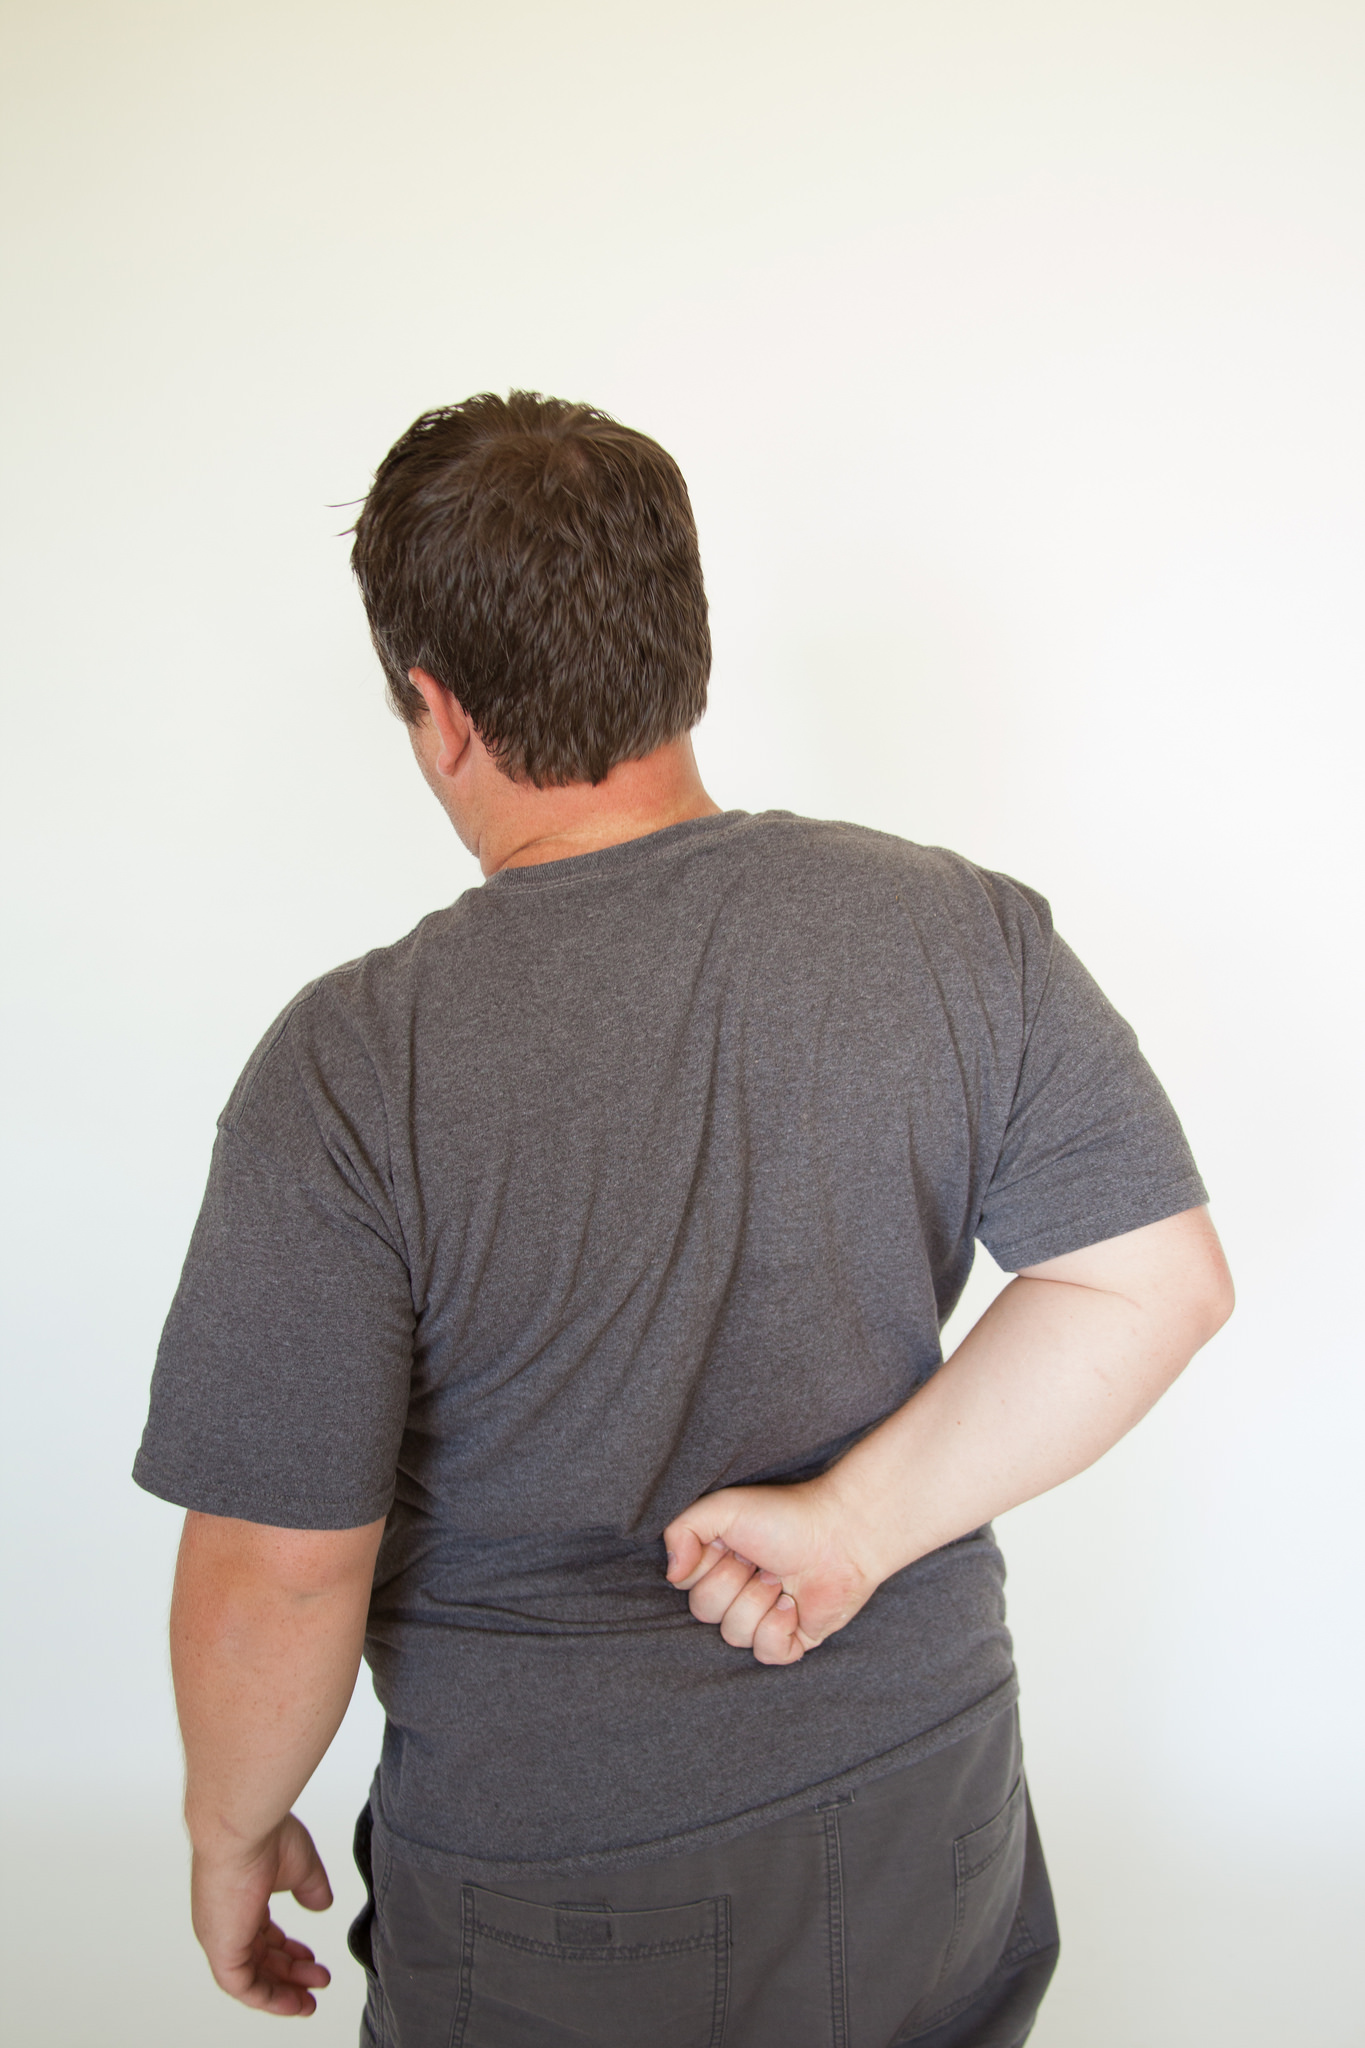 Resolving Lower Back Pain can be done with early intervention